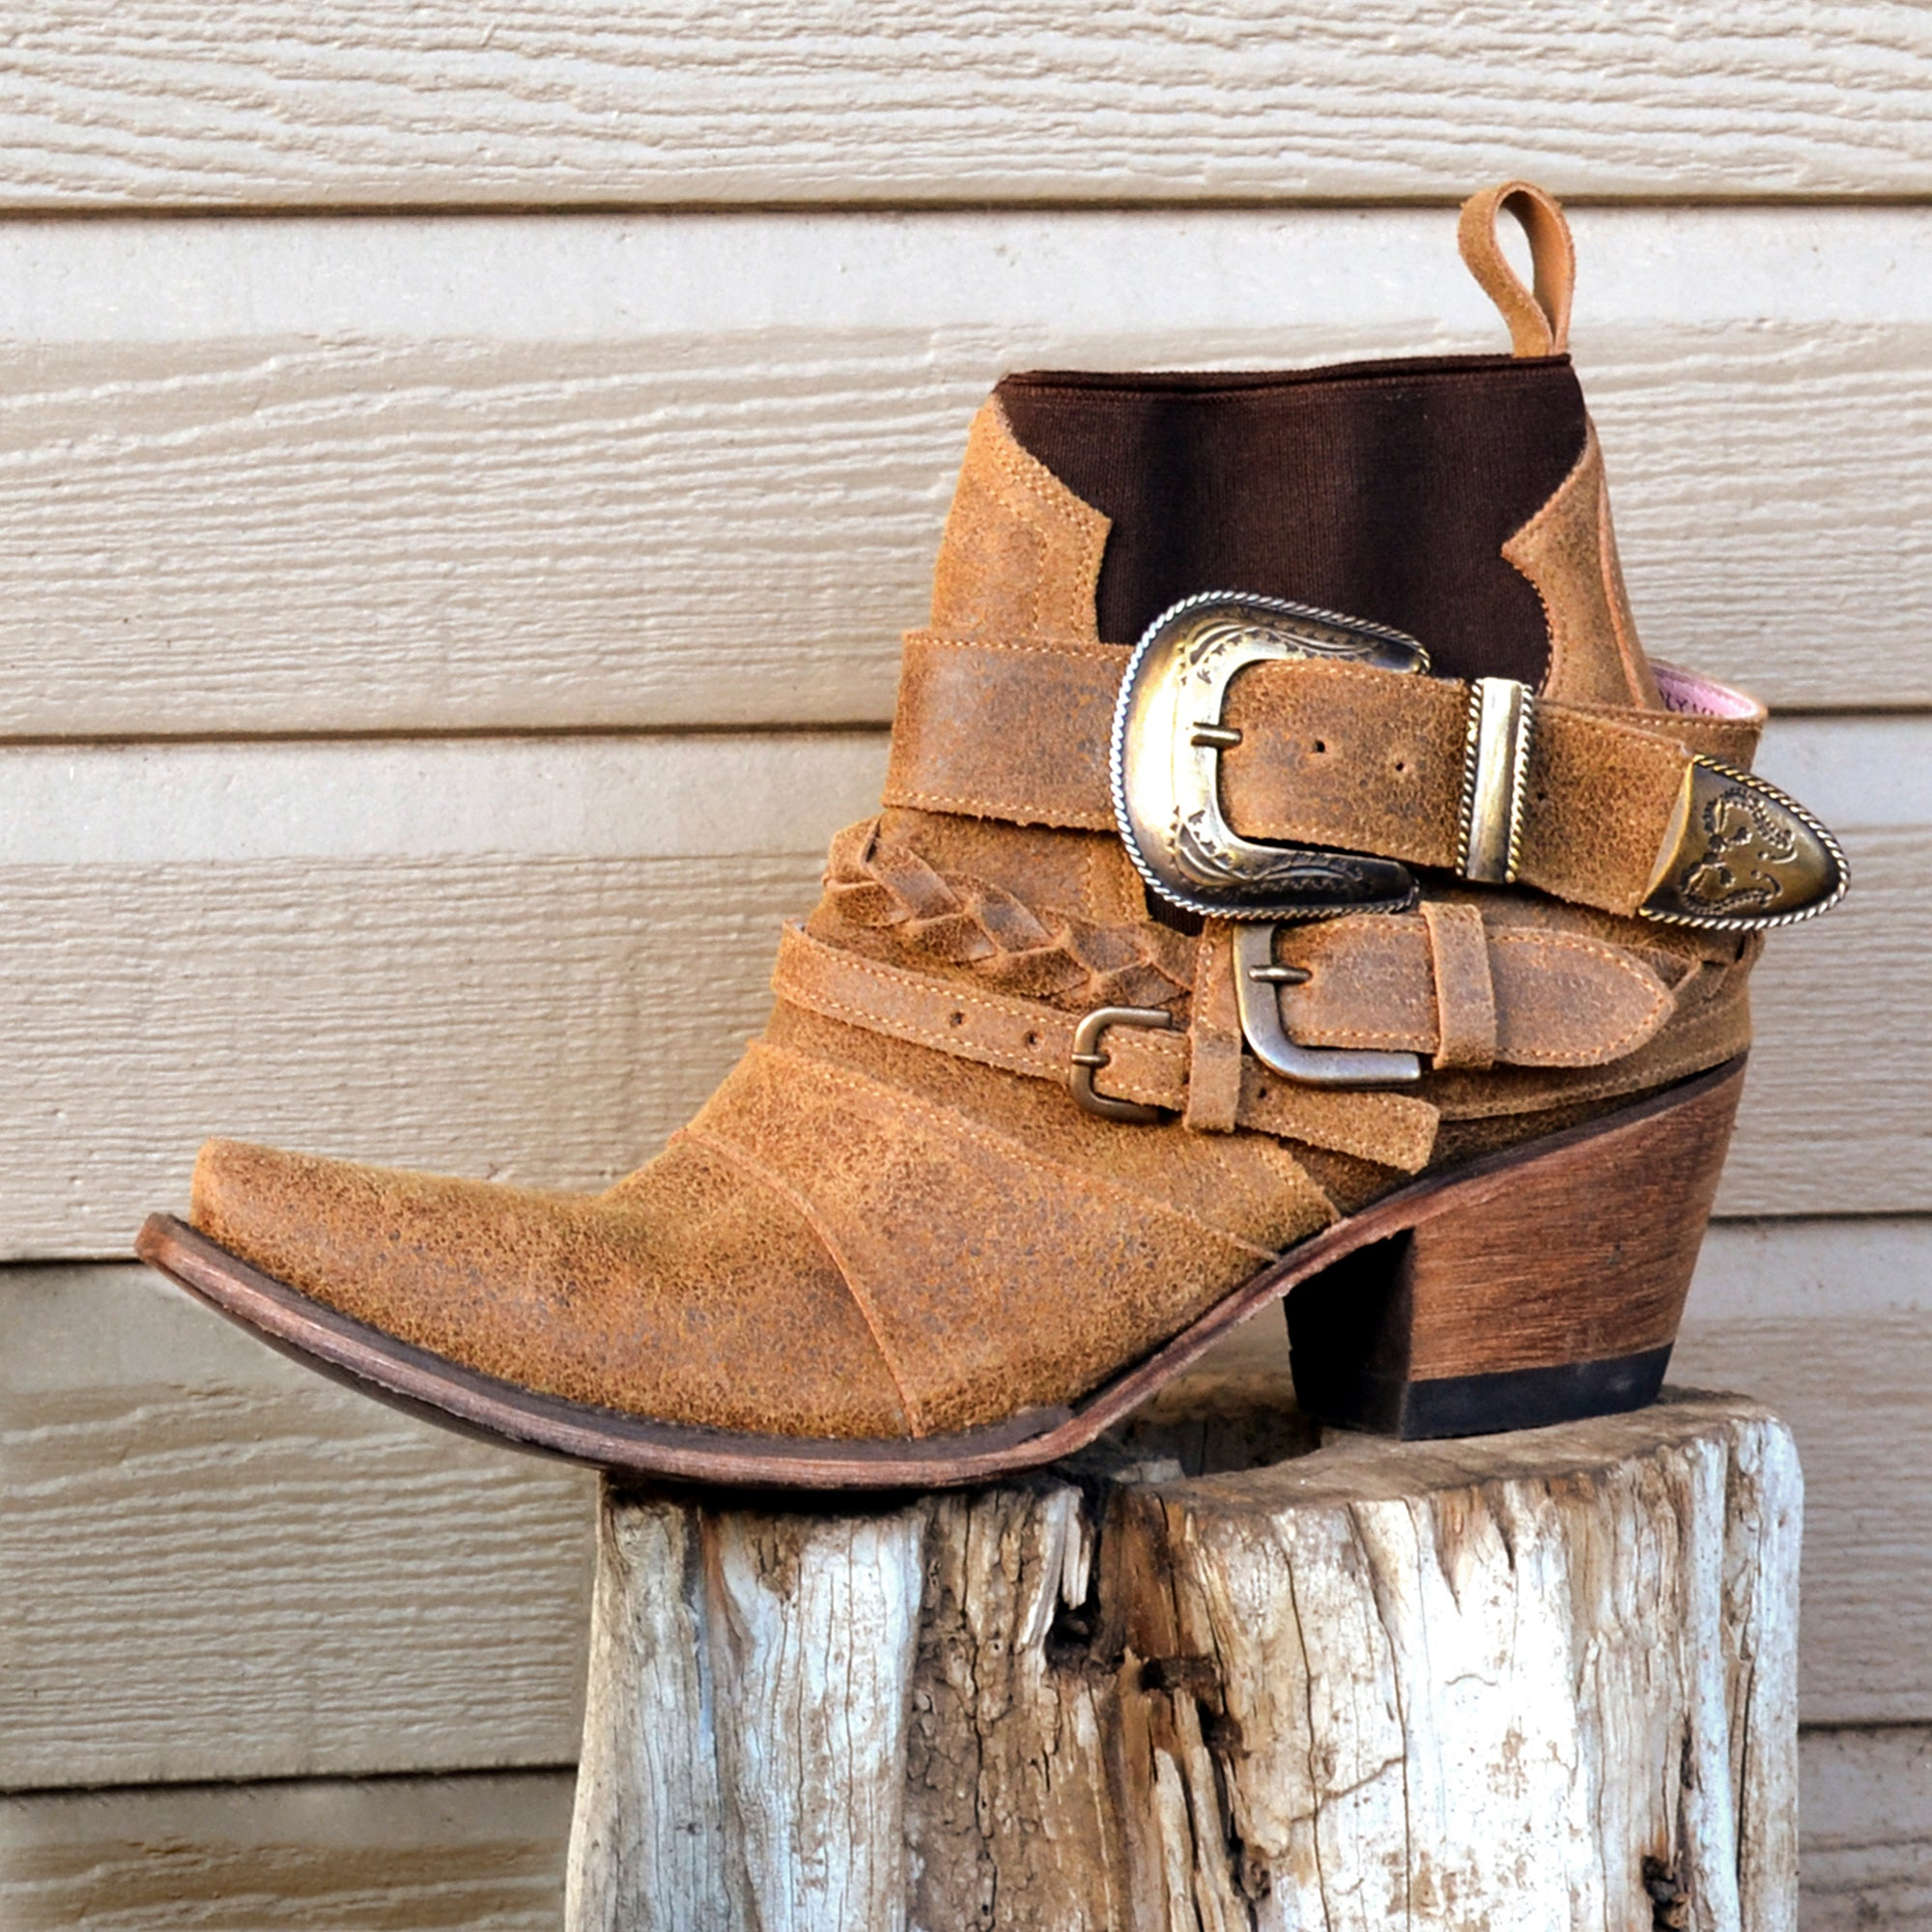 Hwy 237 Ankle Boot